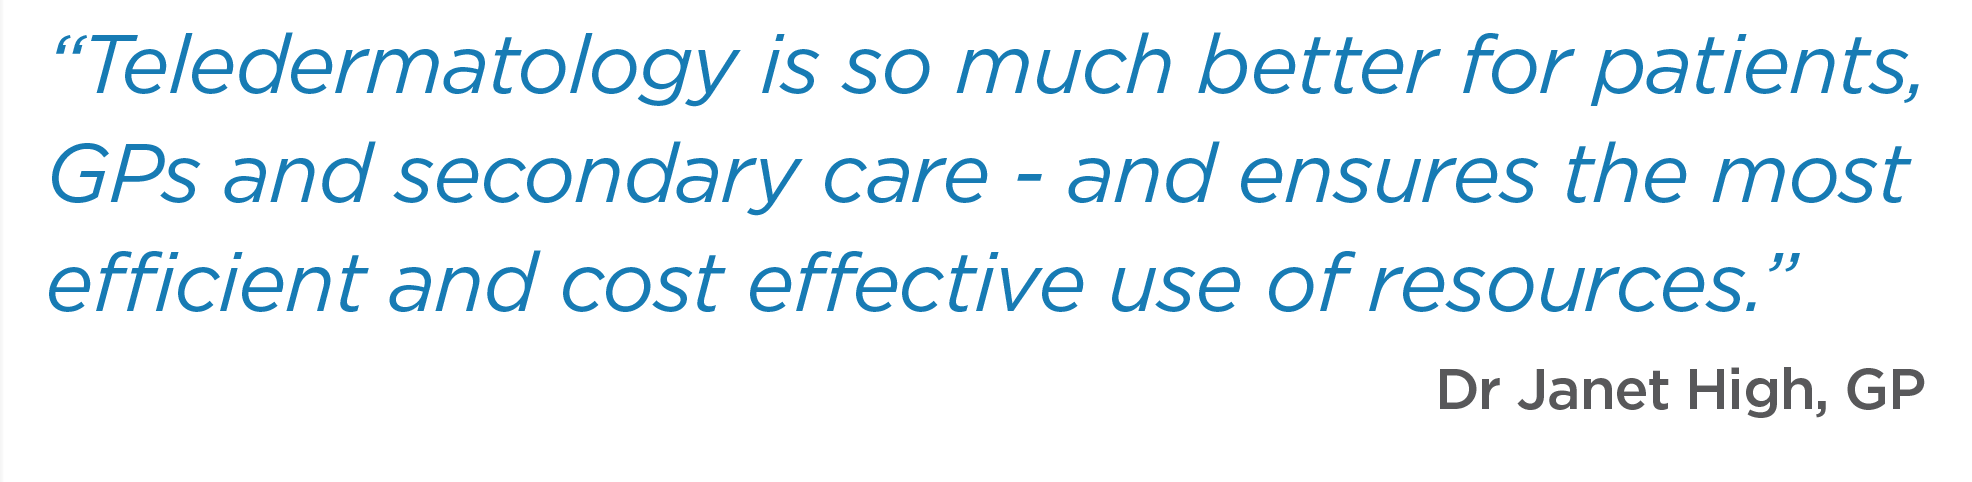 Transforming care for dermatology patients - quote